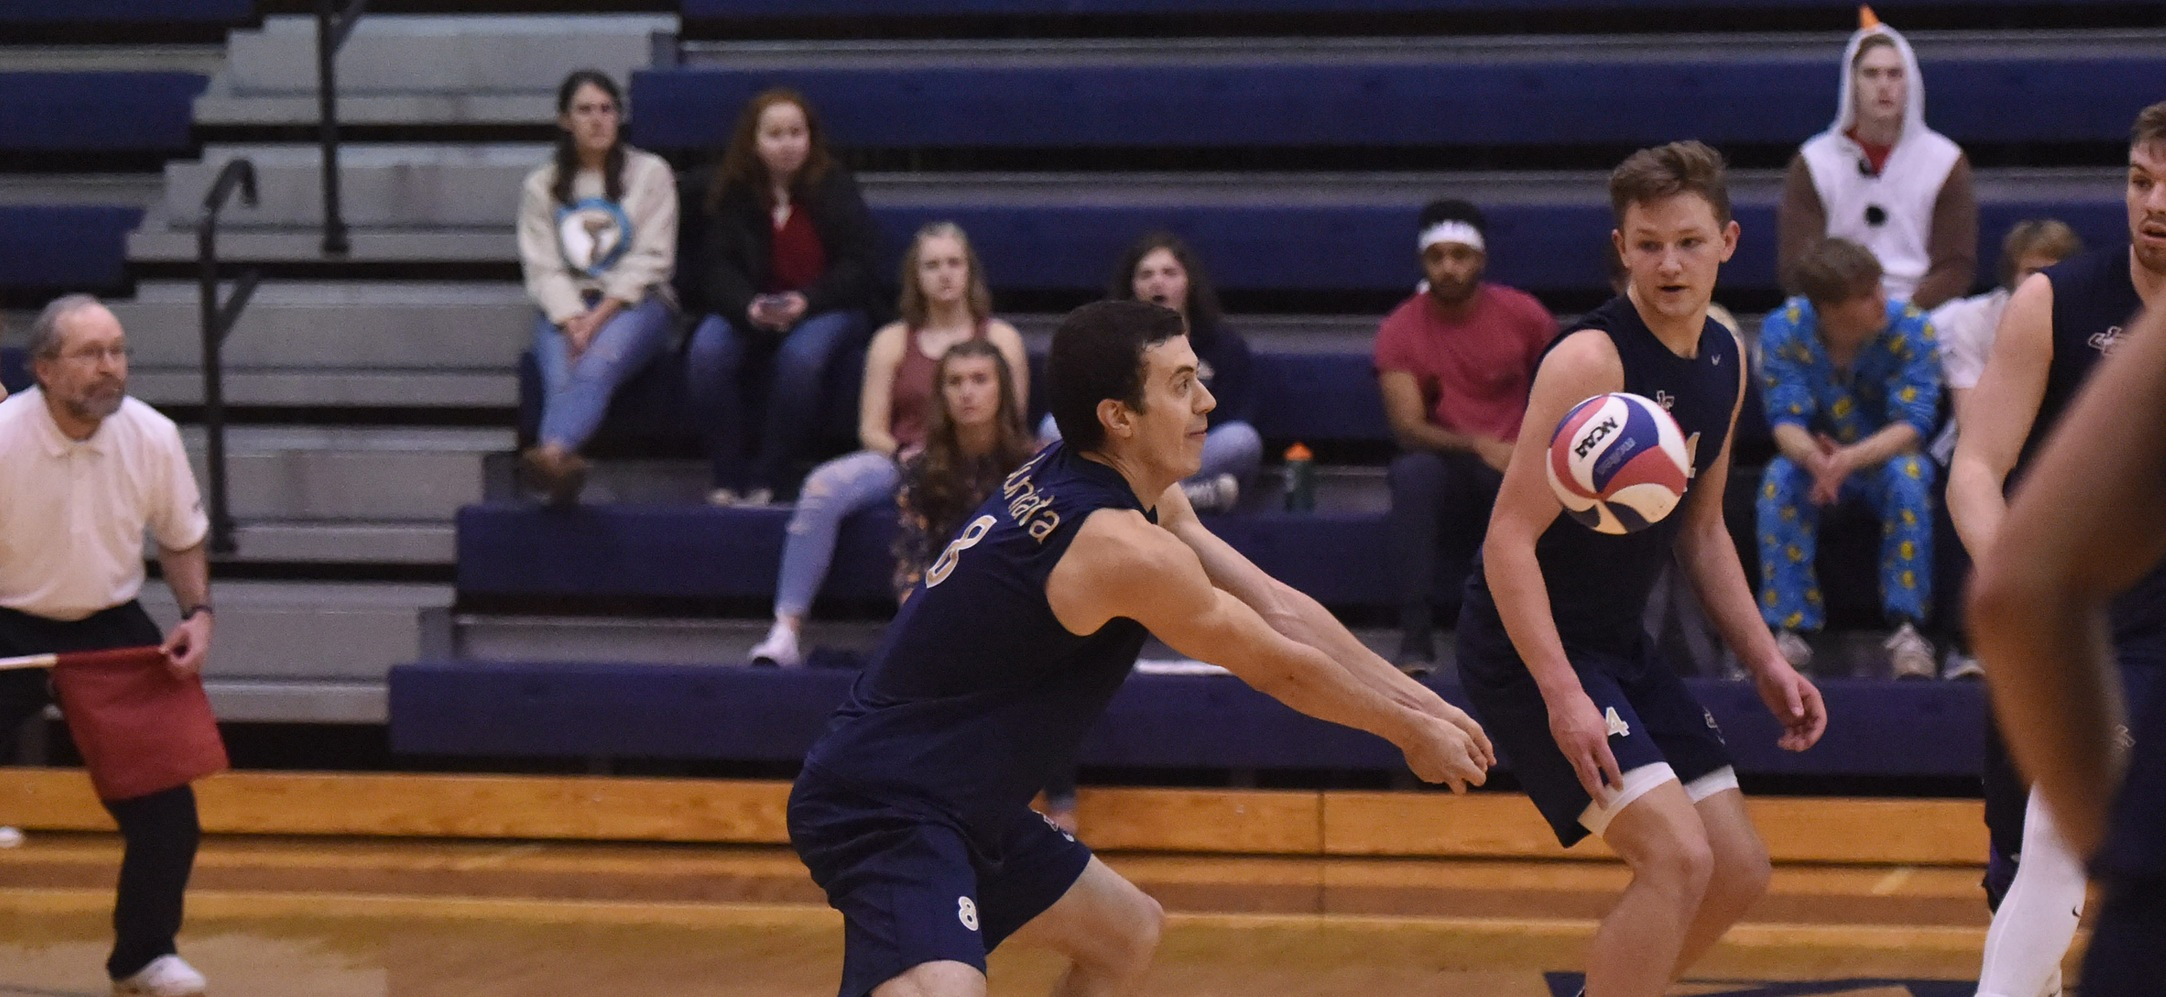 Men's Volleyball Wins Five-Set Thriller Over Southern Virginia